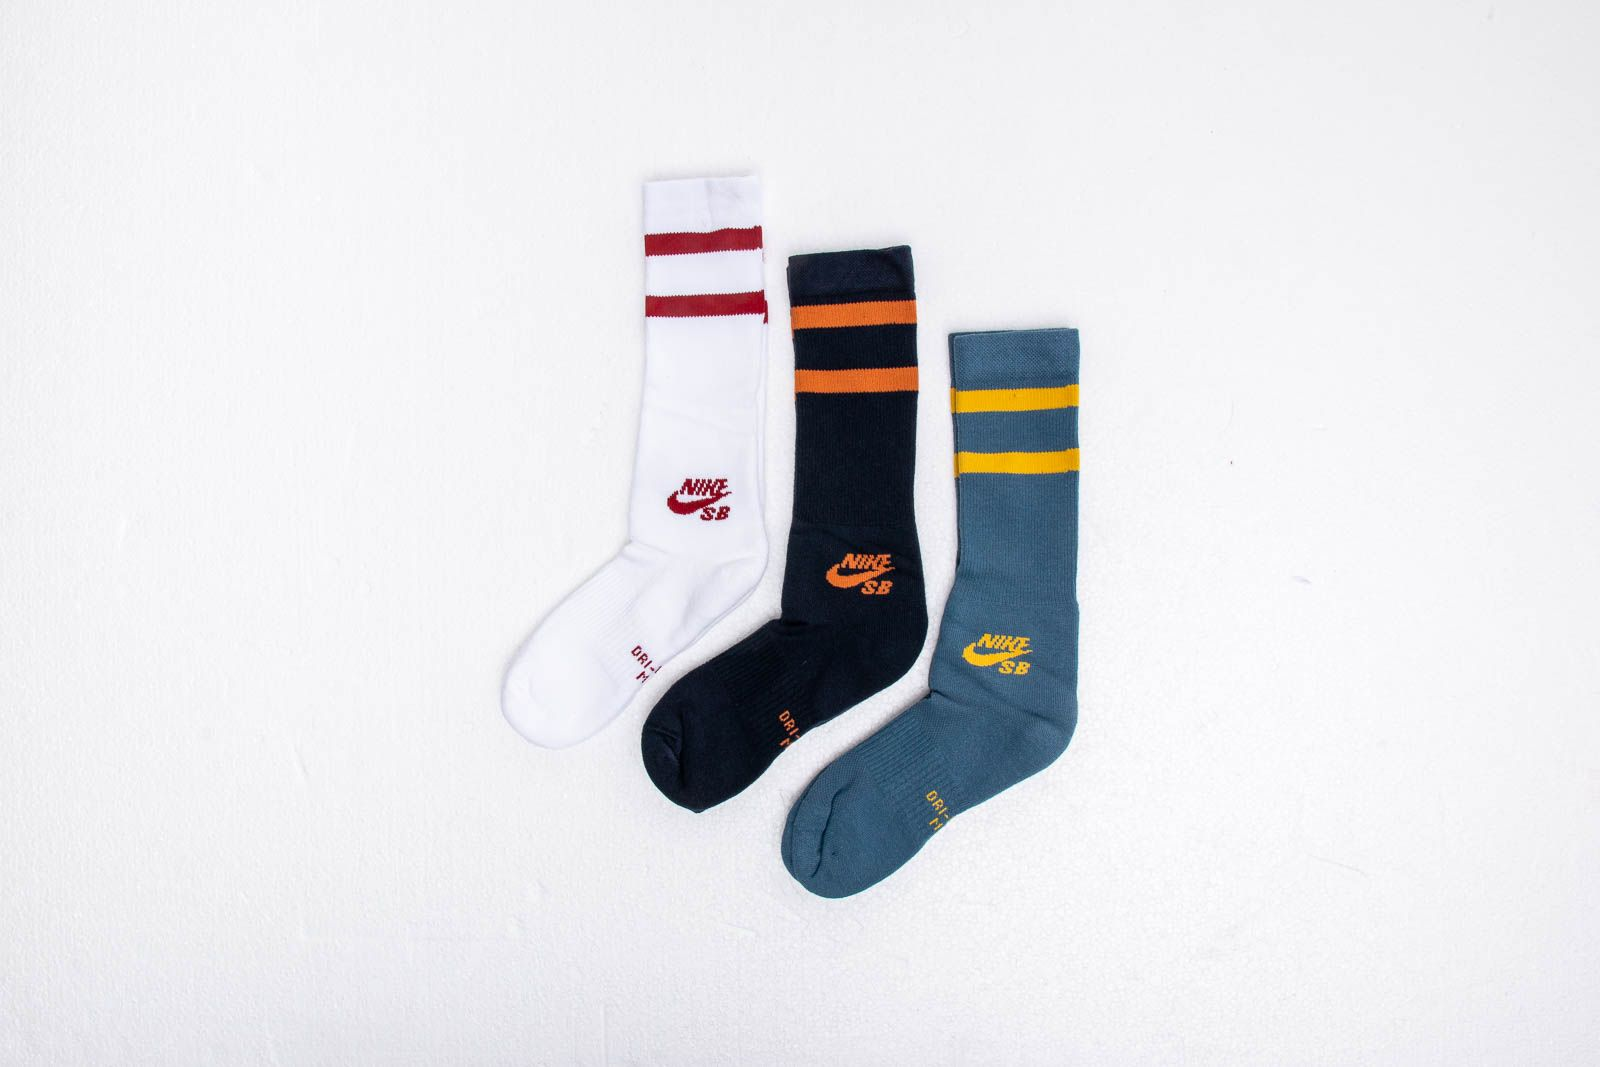 Nike SB 3-Pack Crew Socks Multi